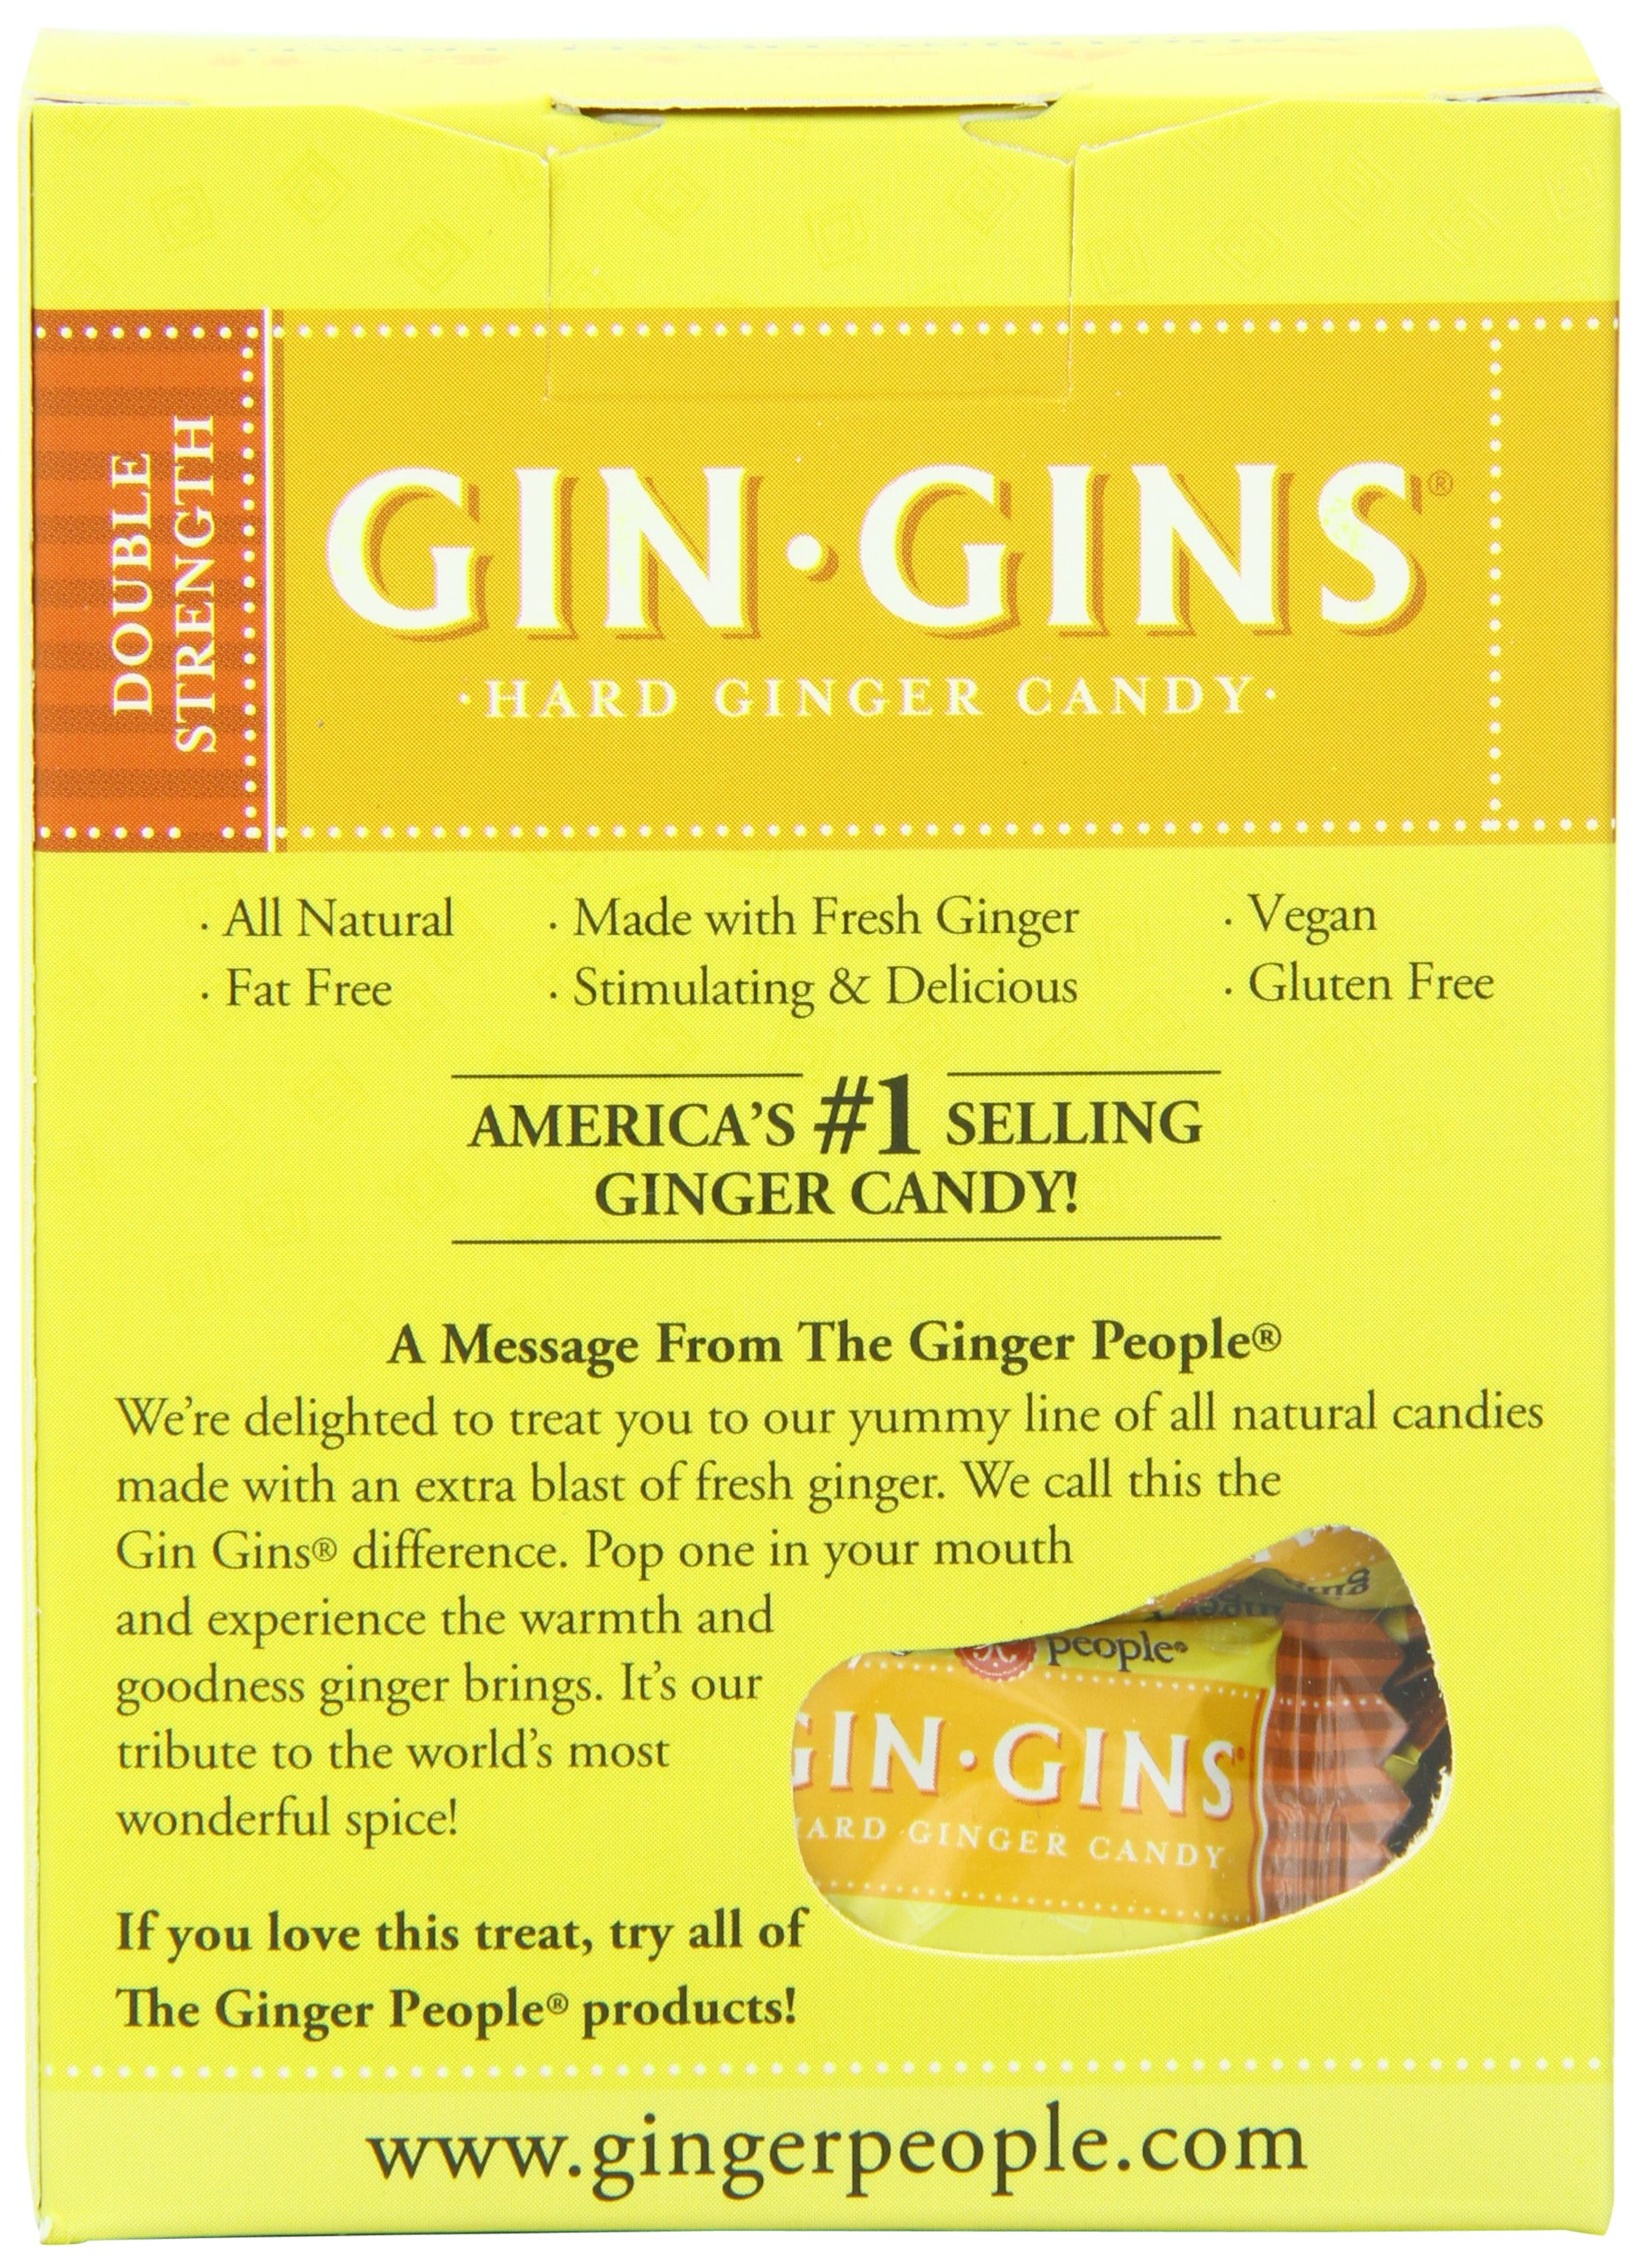 The Ginger People Gin Gins Double Strength Hard Candy, 4.5 Oz Boxes (Pack Of 12) by The Ginger People